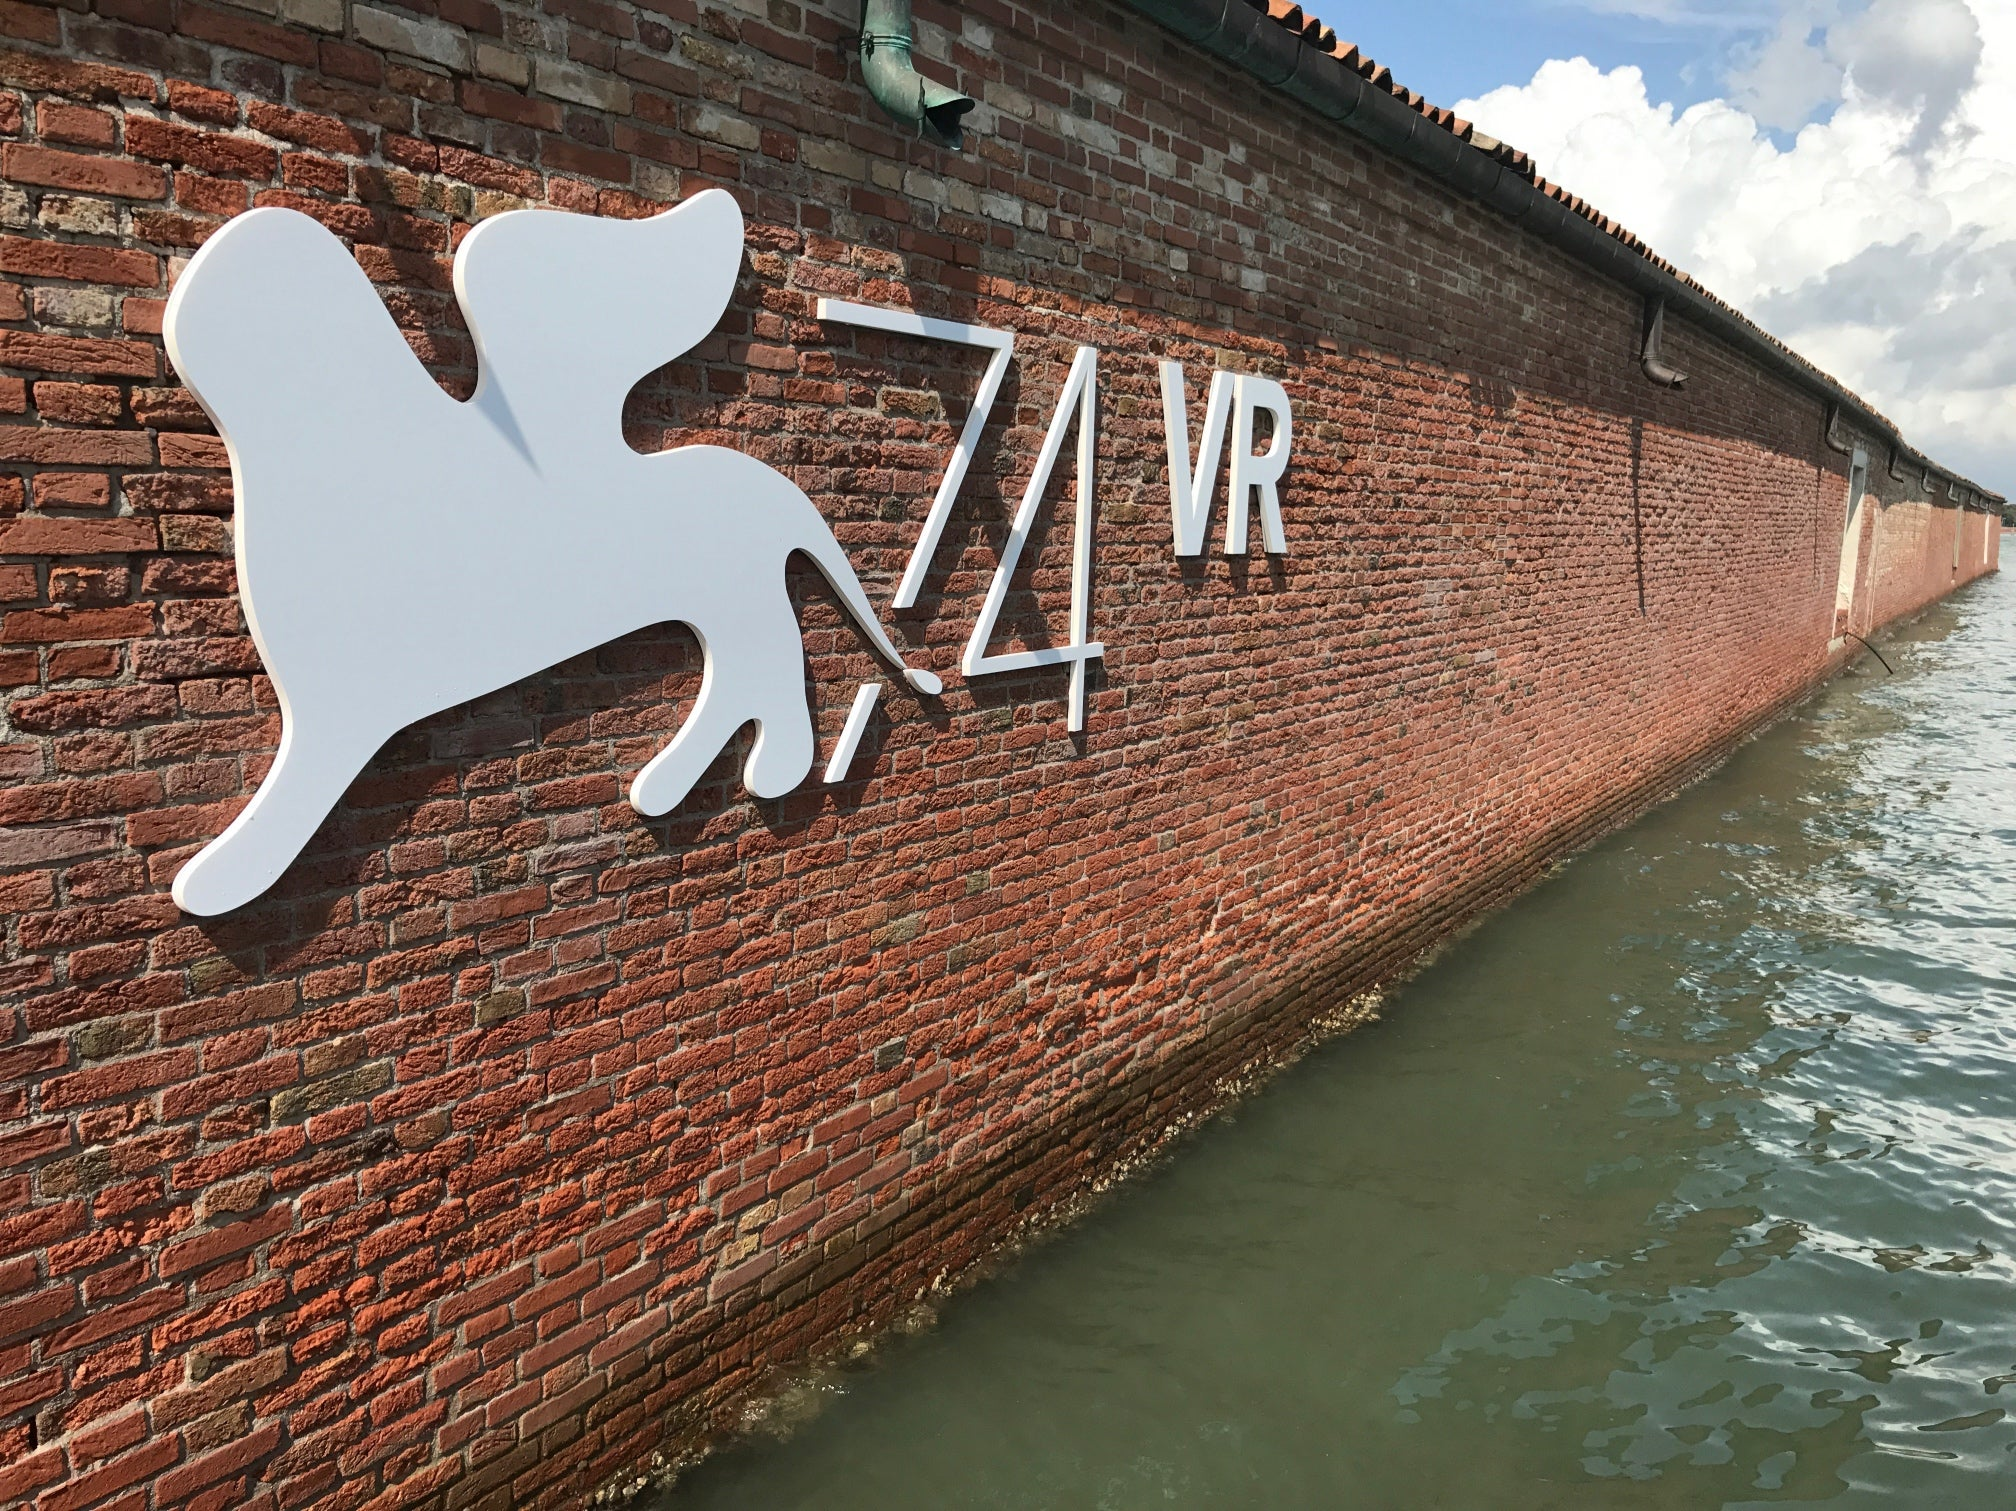 Virtyakl Reality space at the 2017 Venice Film Festival